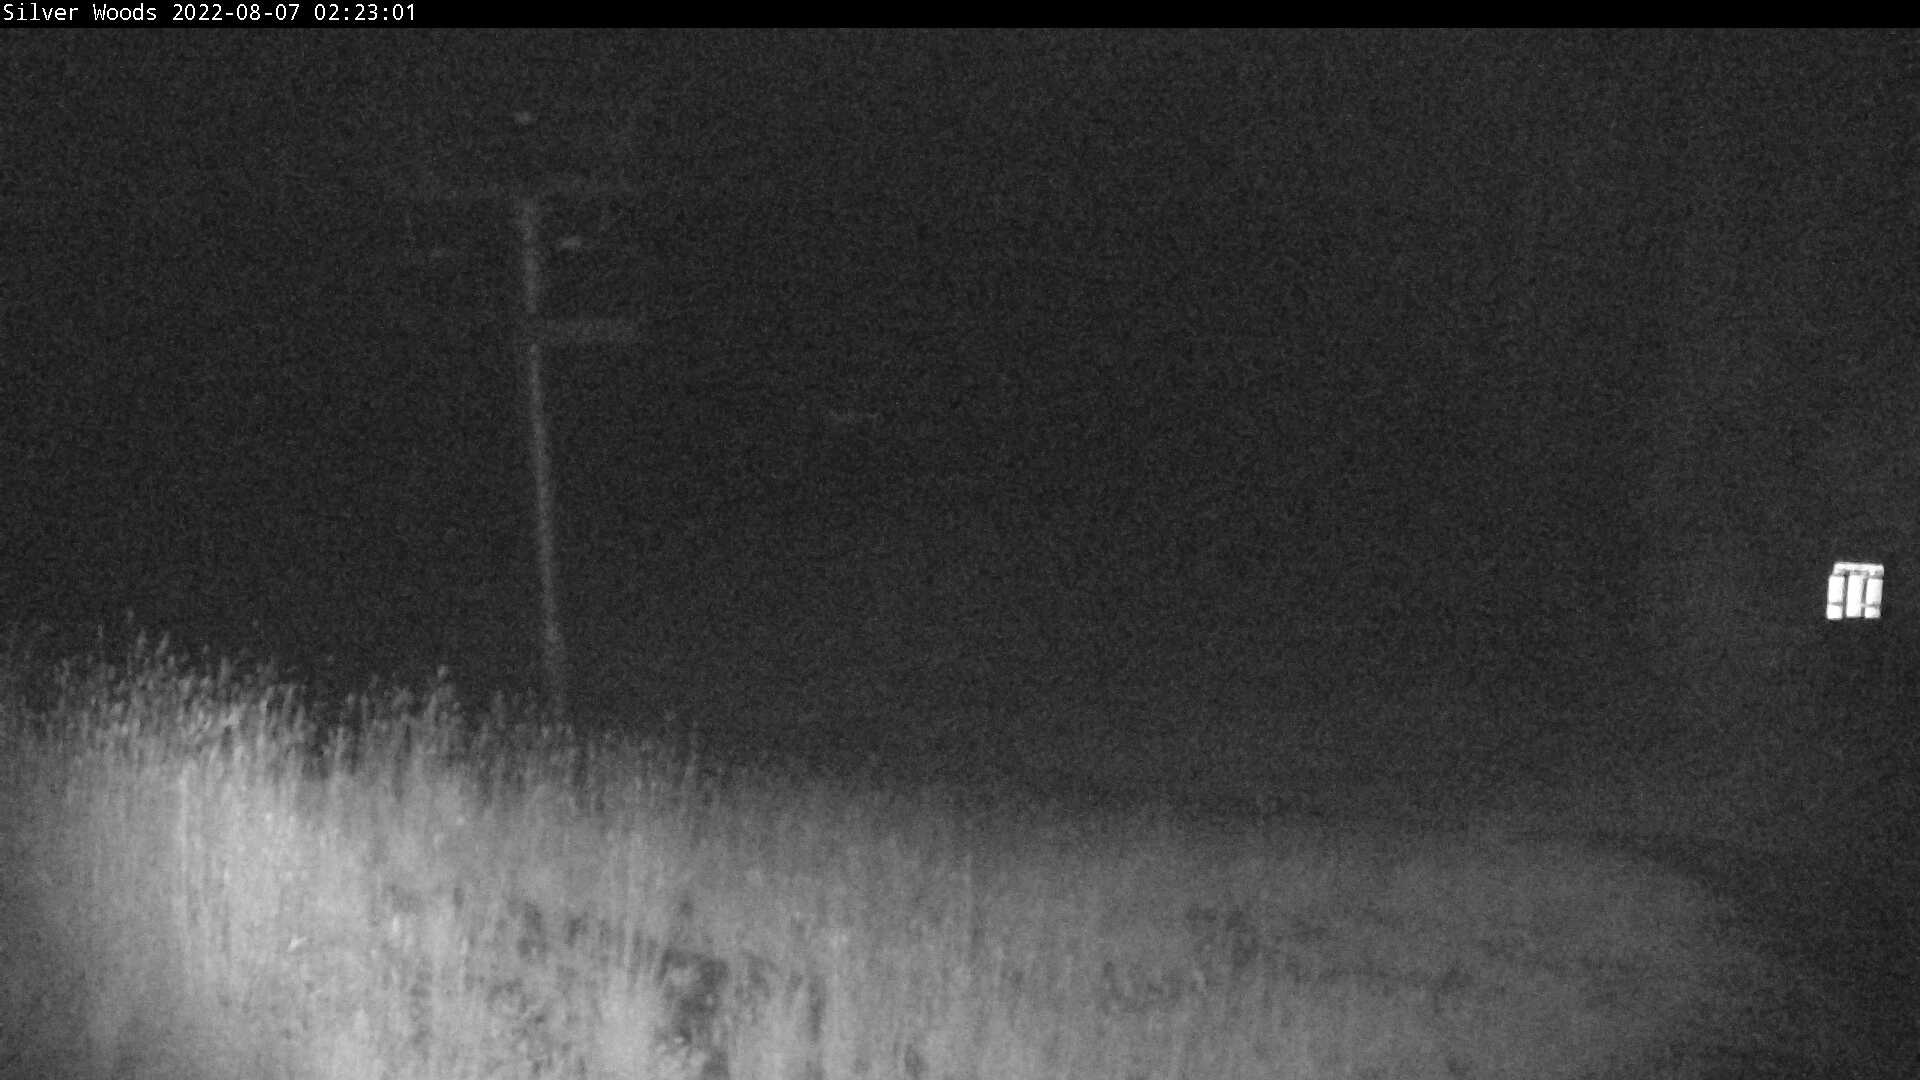 SilverStar Silver Woods Webcam